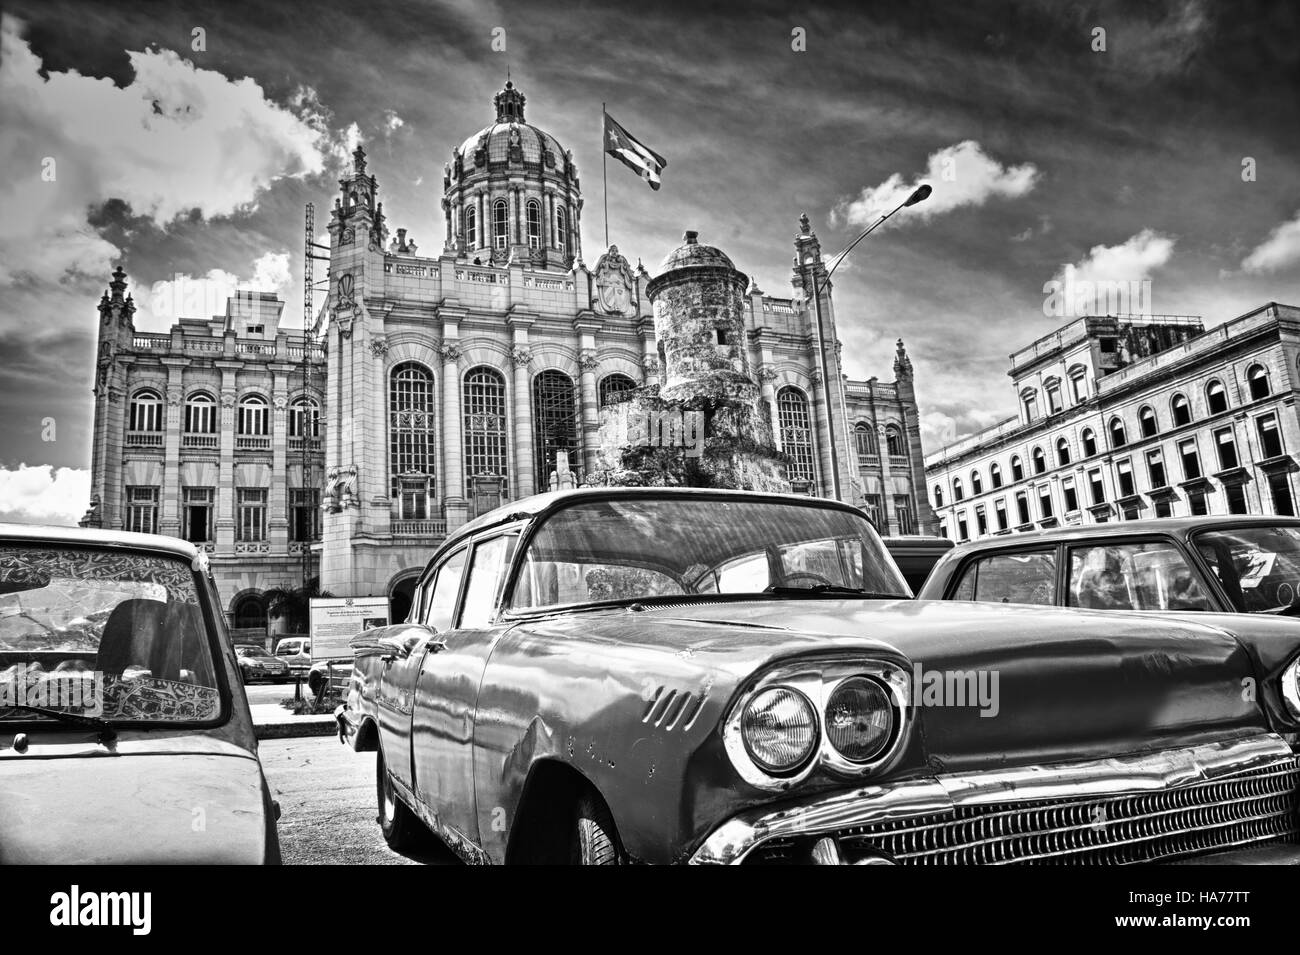 Black and white image of classic american parked in front of the Revolution Palace in Havana. Cuba - Stock Image